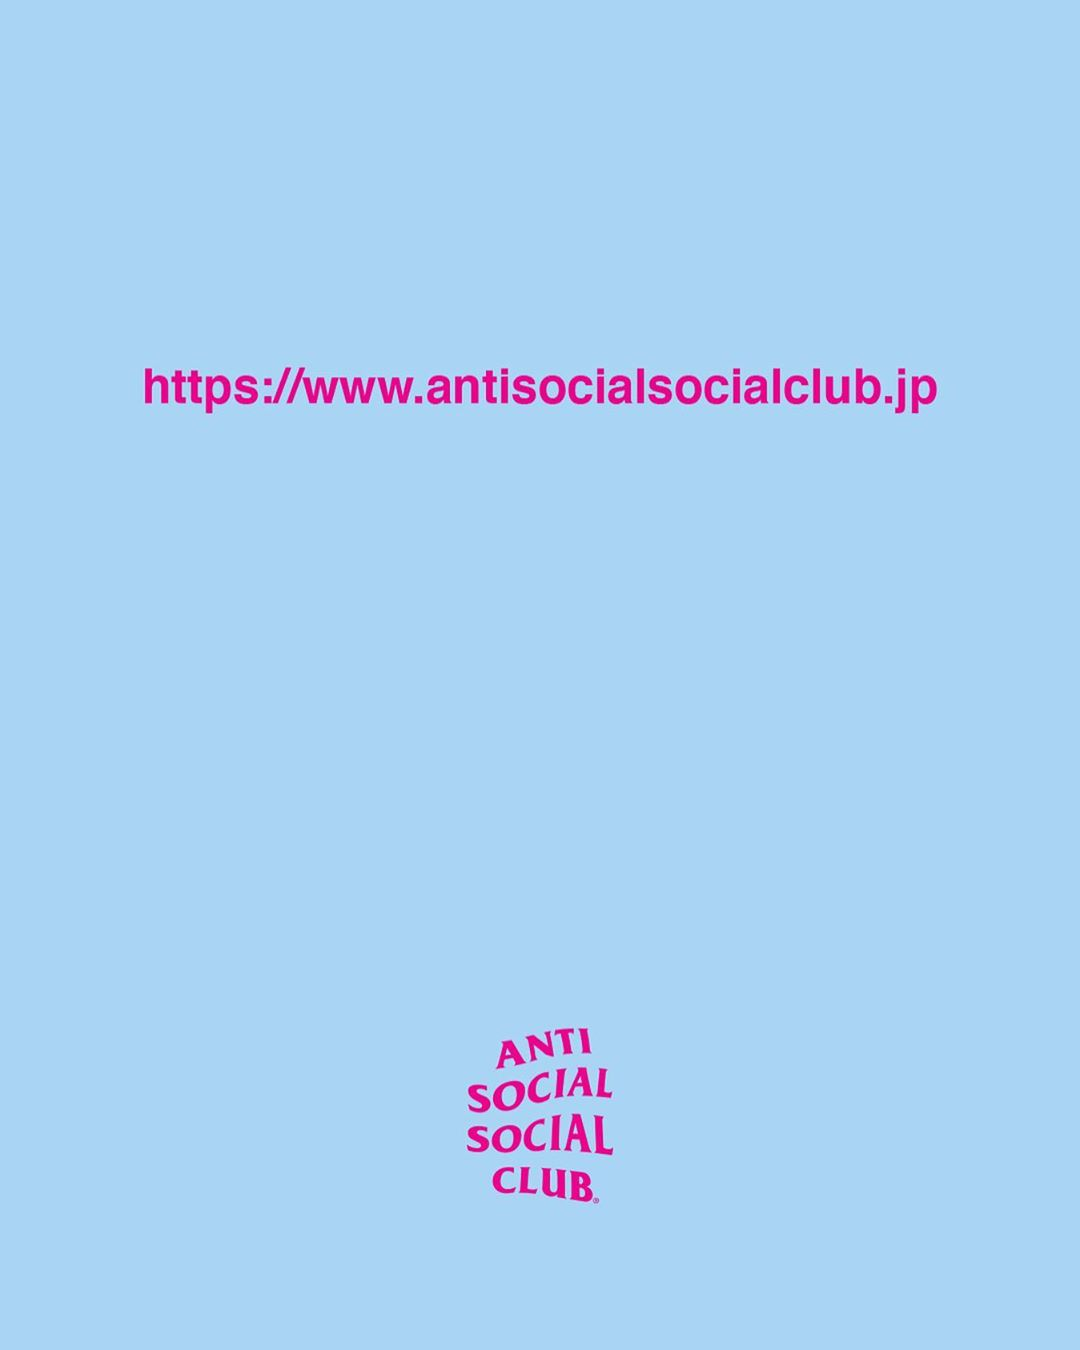 anti-social-social-club-japan-site-open